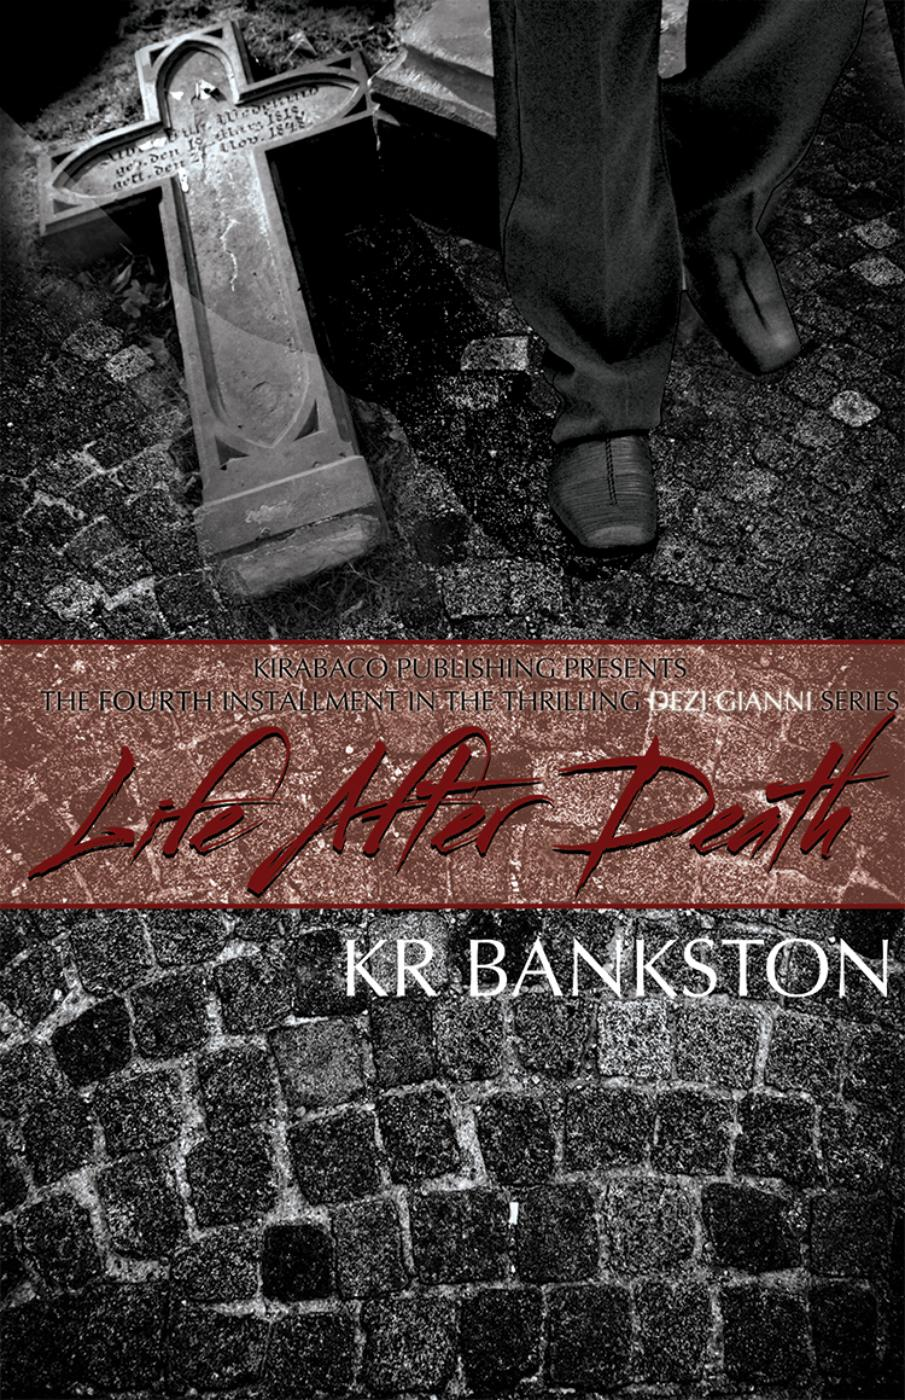 Life After Death (book 4)